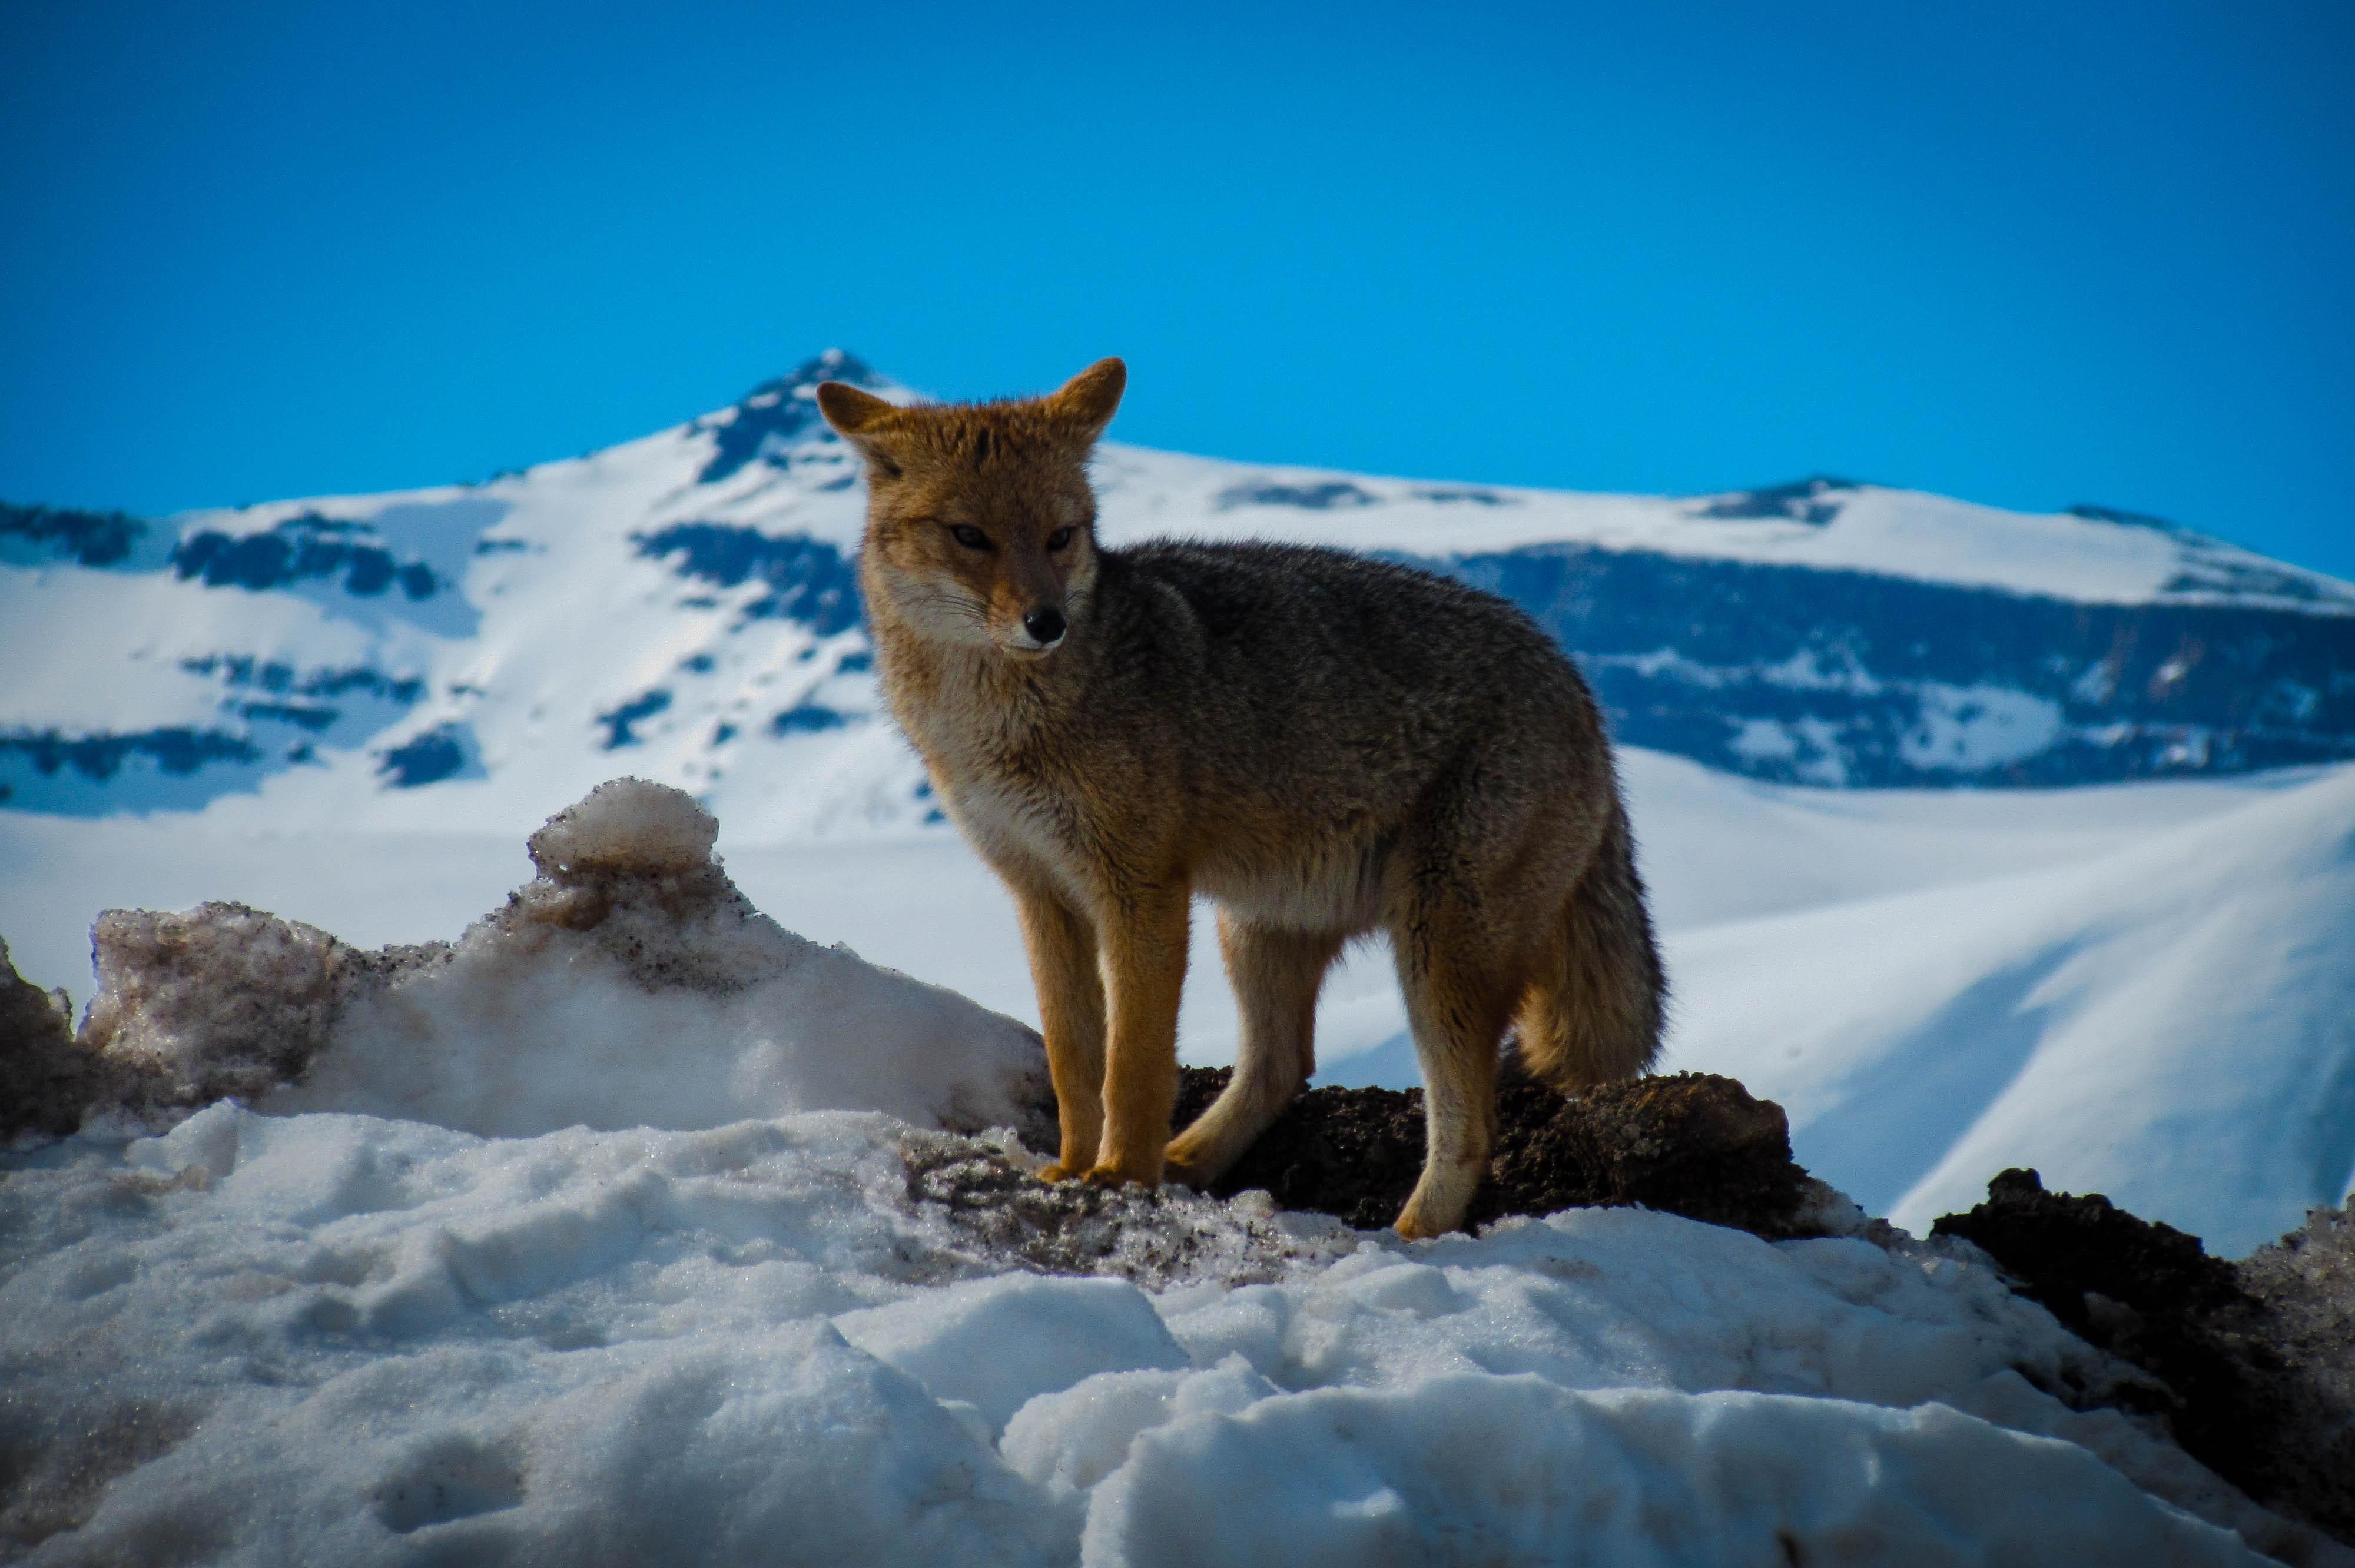 A fox on top of a snowy mound in an artic scene